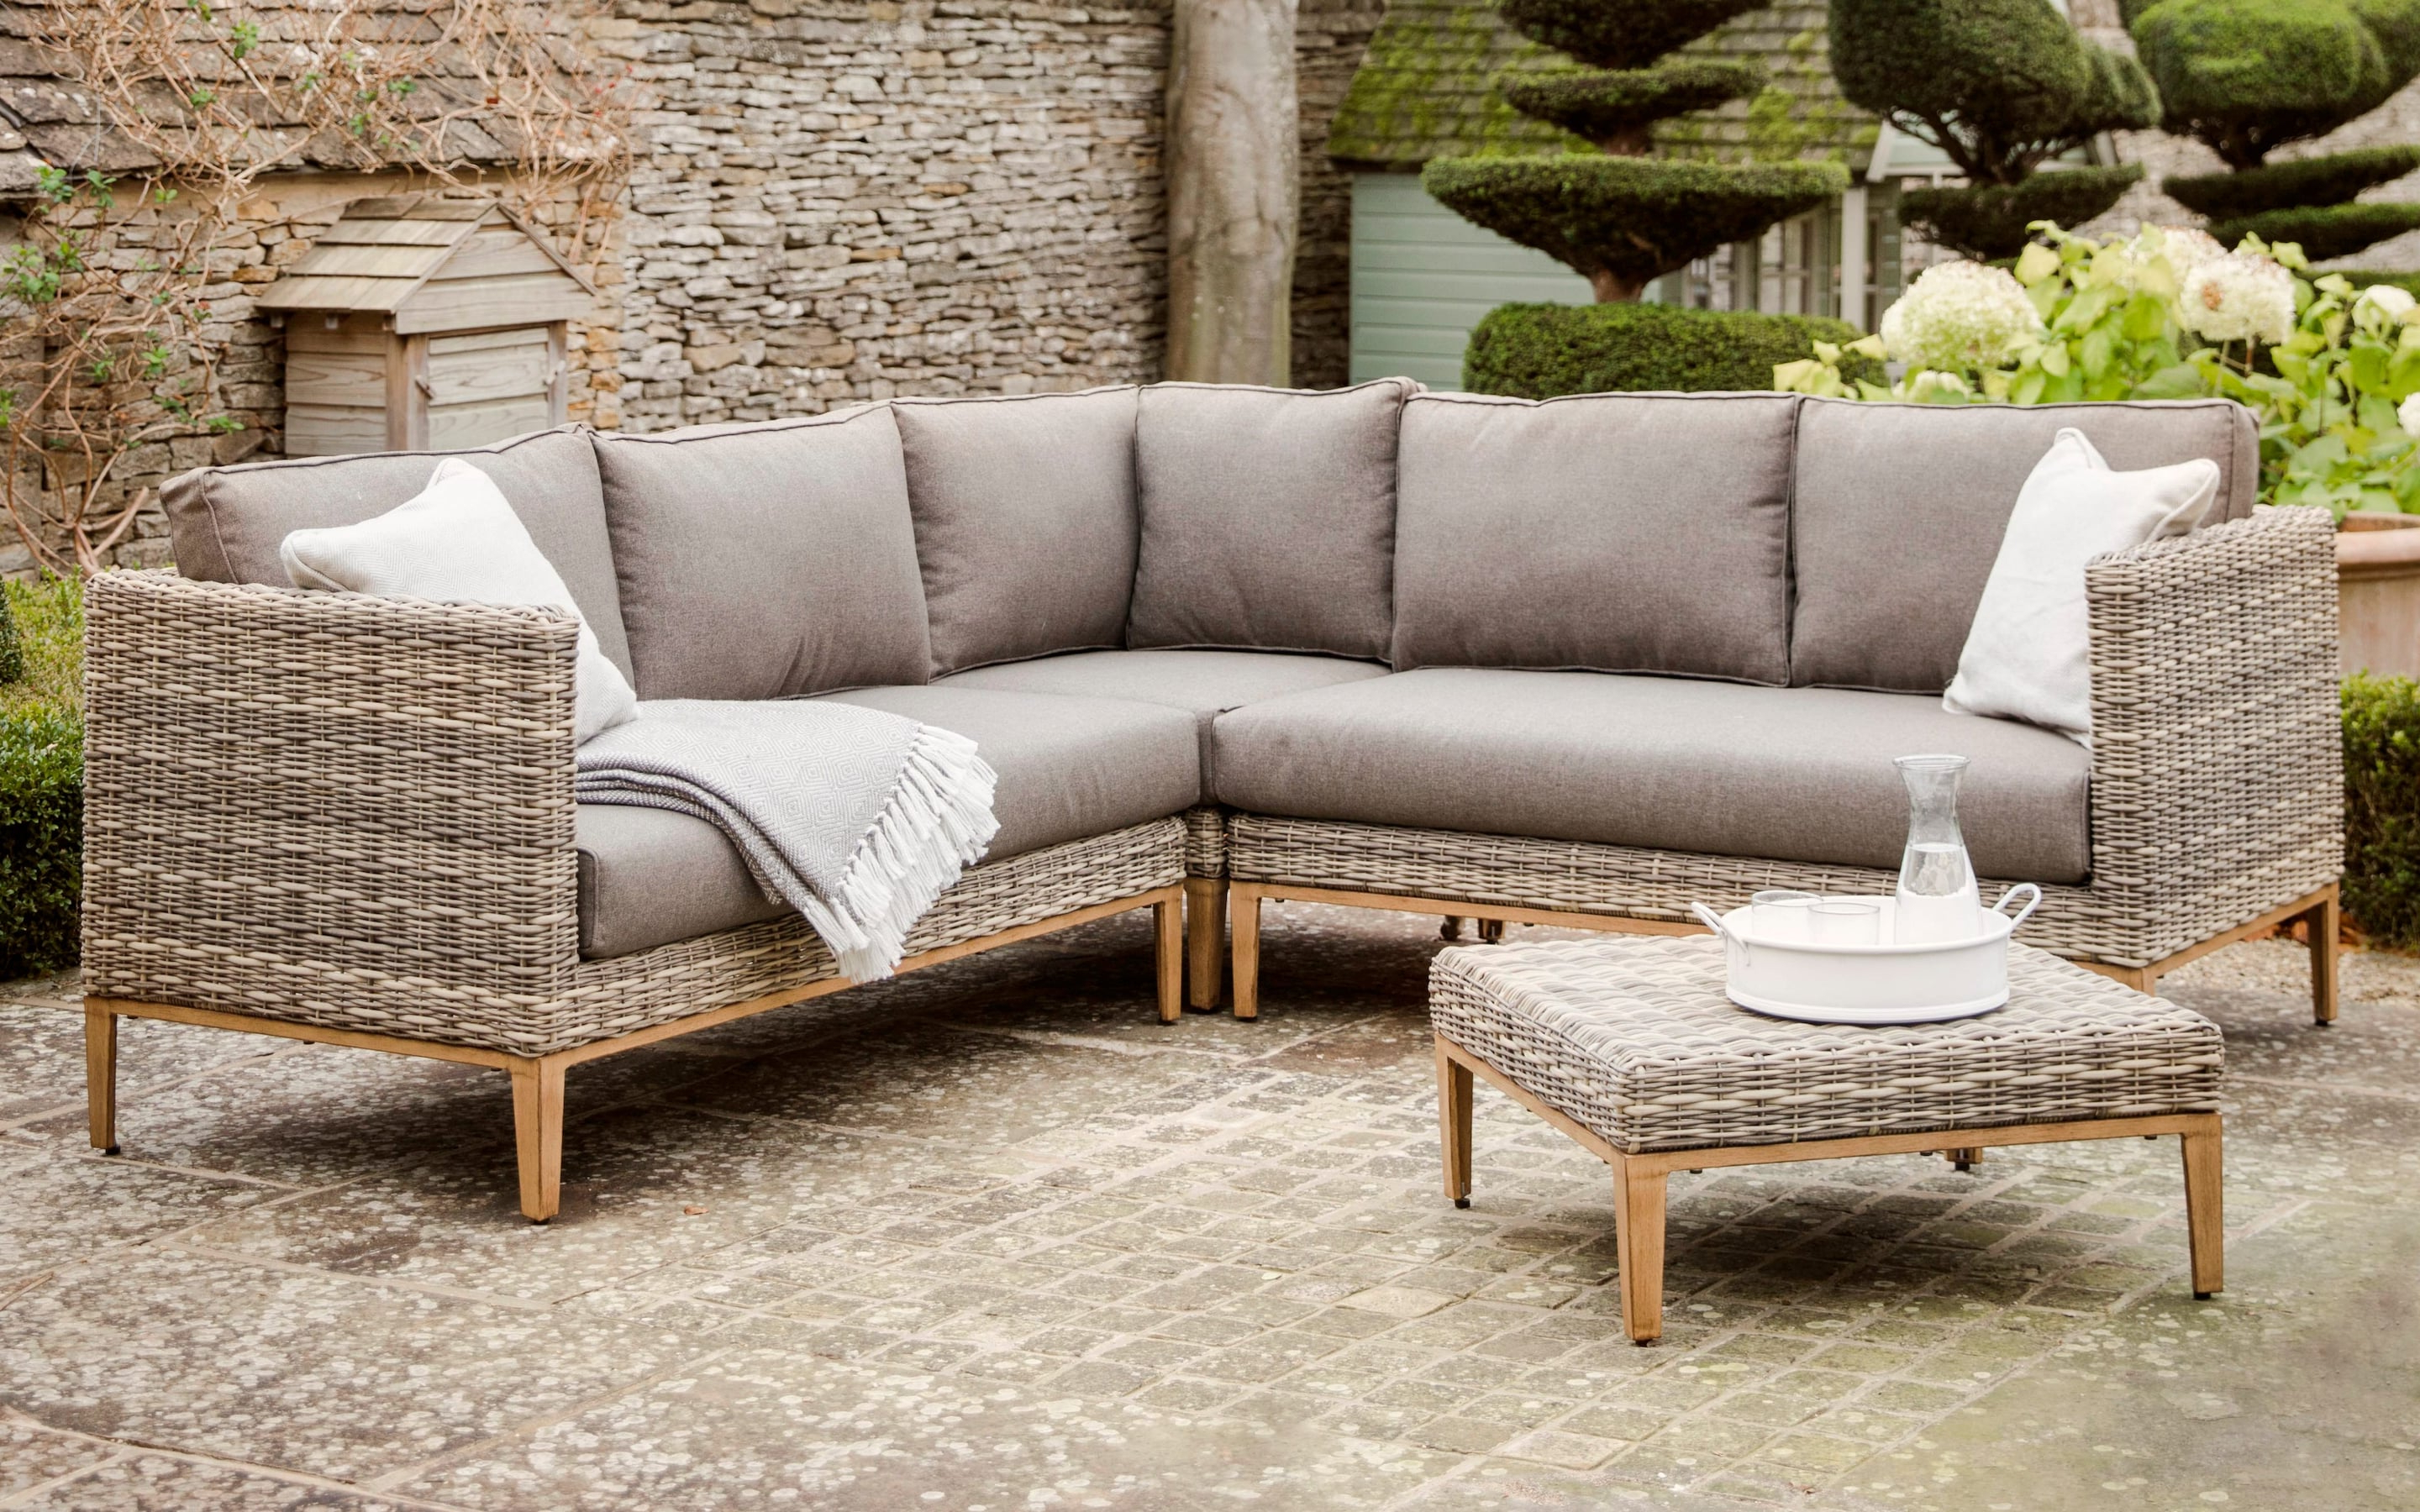 Recent Best Rattan Garden Furniture – And Where To Buy It (Gallery 10 of 20)